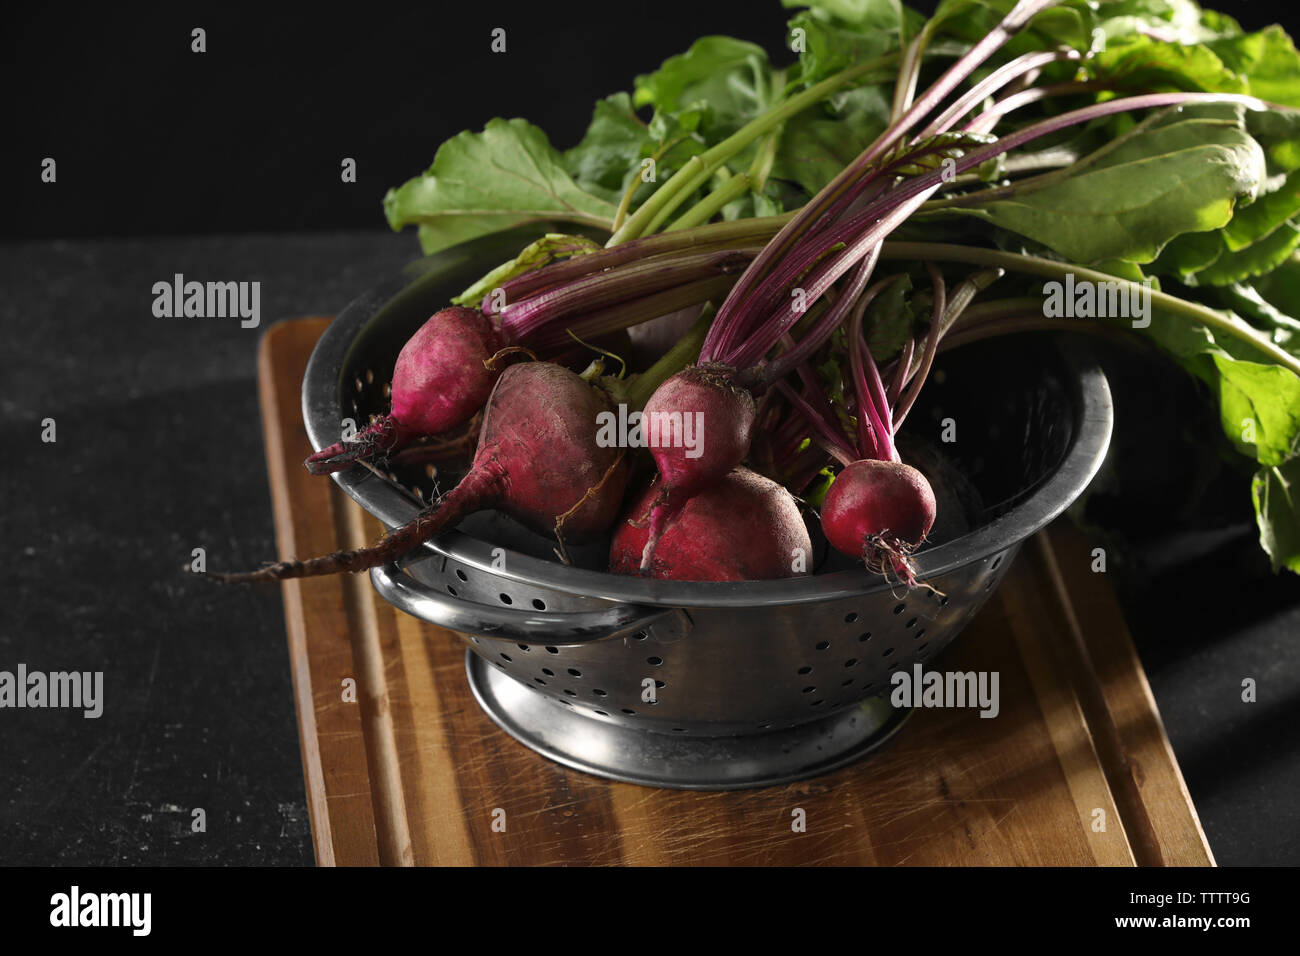 Bunch of fresh beets in a colander on wooden board Stock Photo